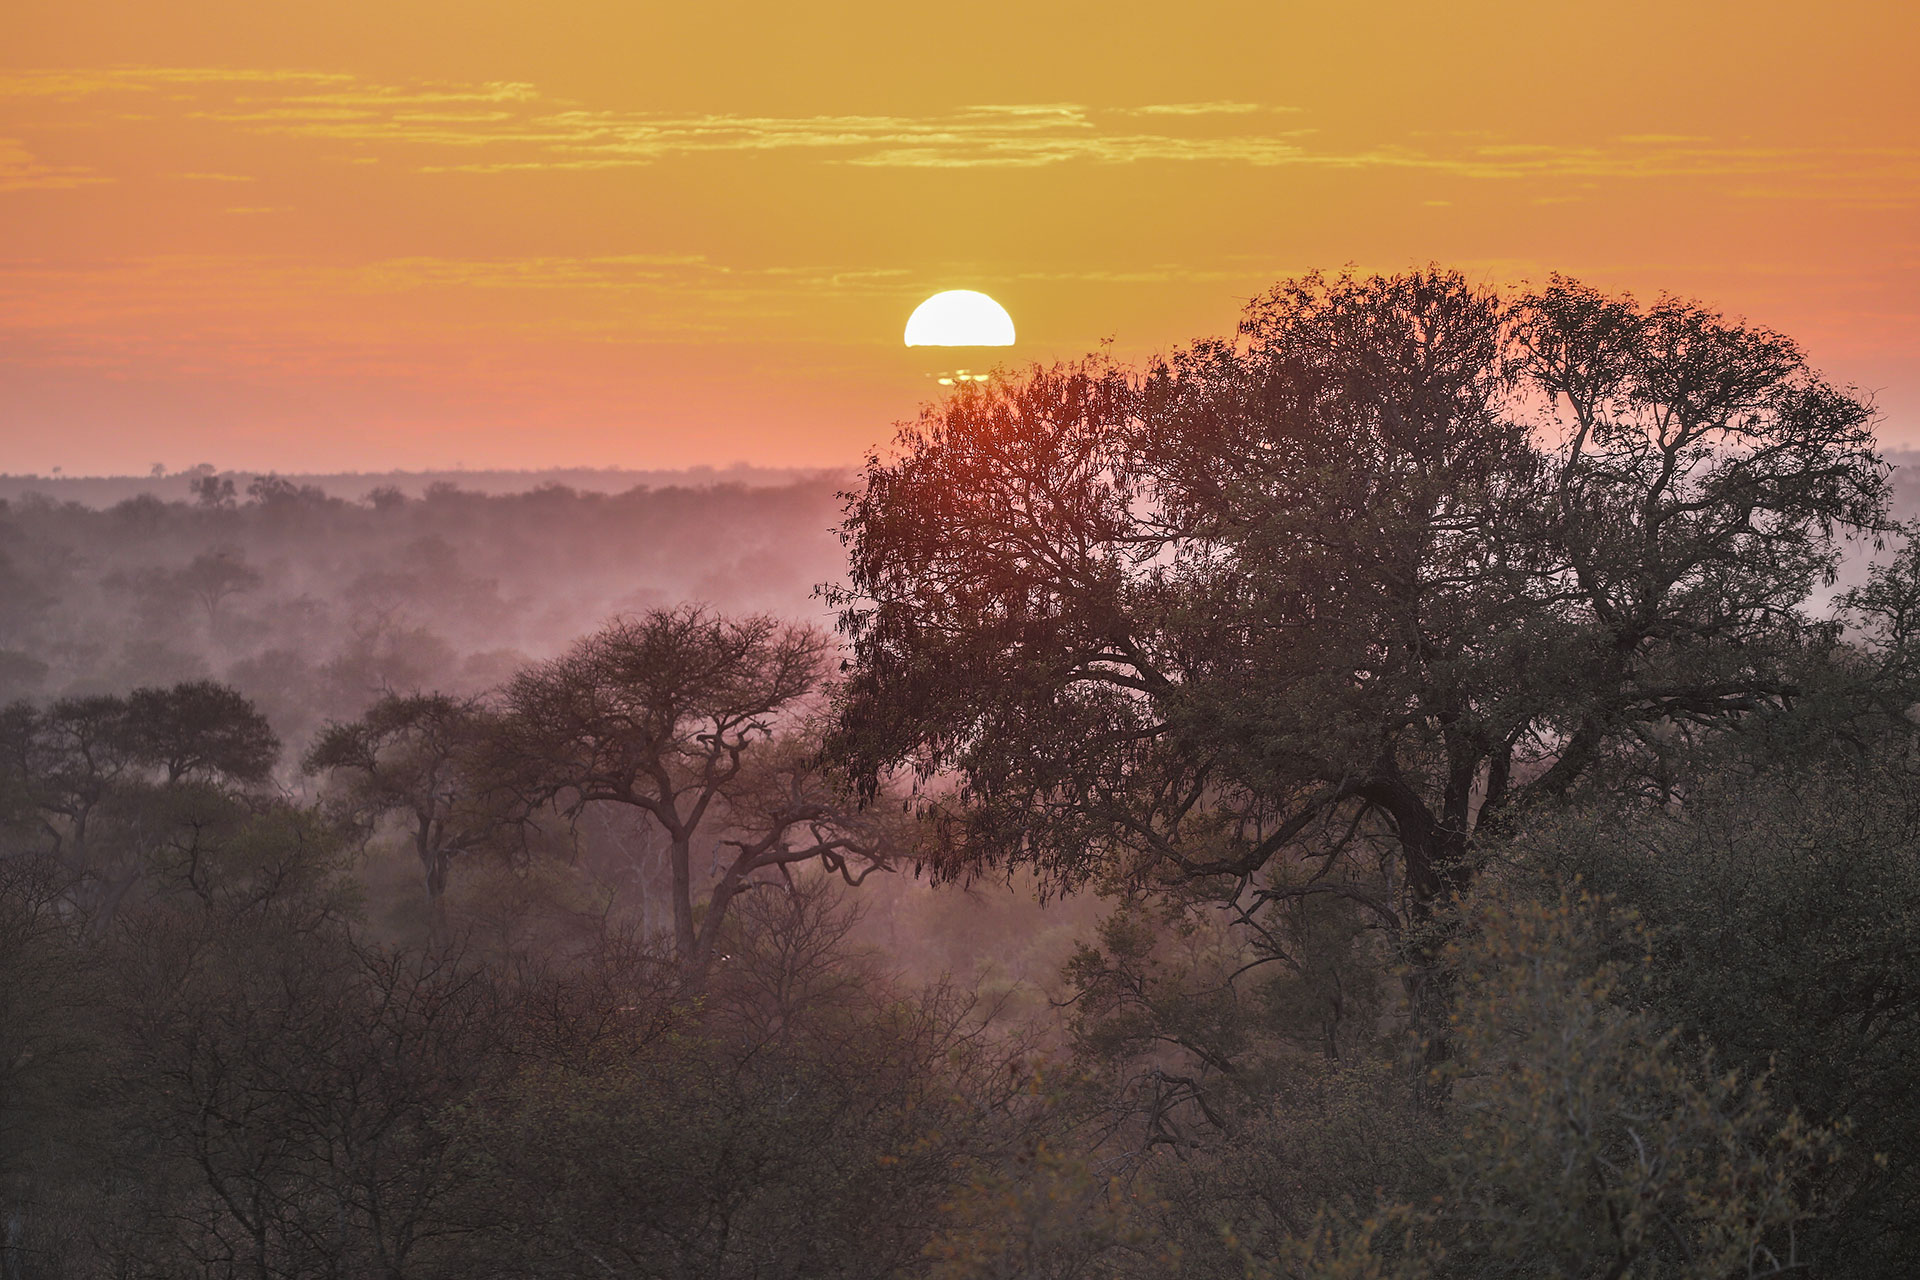 Tanda Tula - the landscape illuminated by the sunset in the Greater Kruger